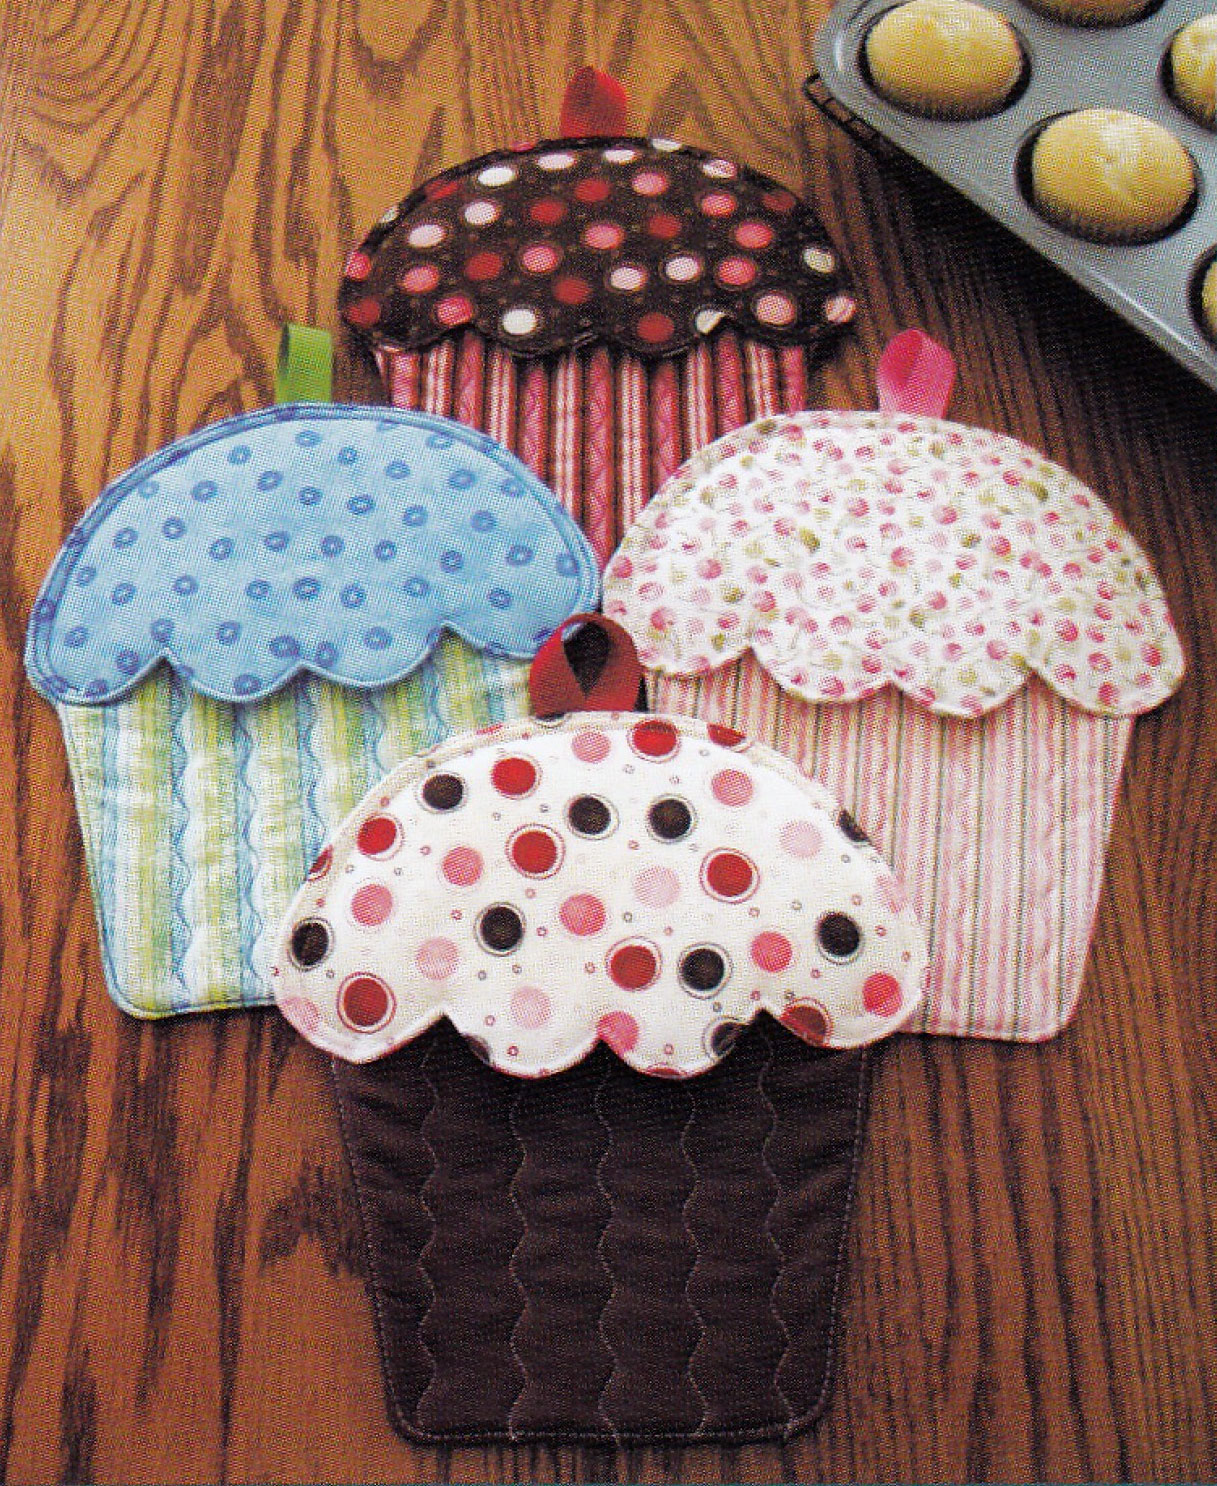 hot-cakes-pincushion-sewing-pattern-susie-c-shore-2